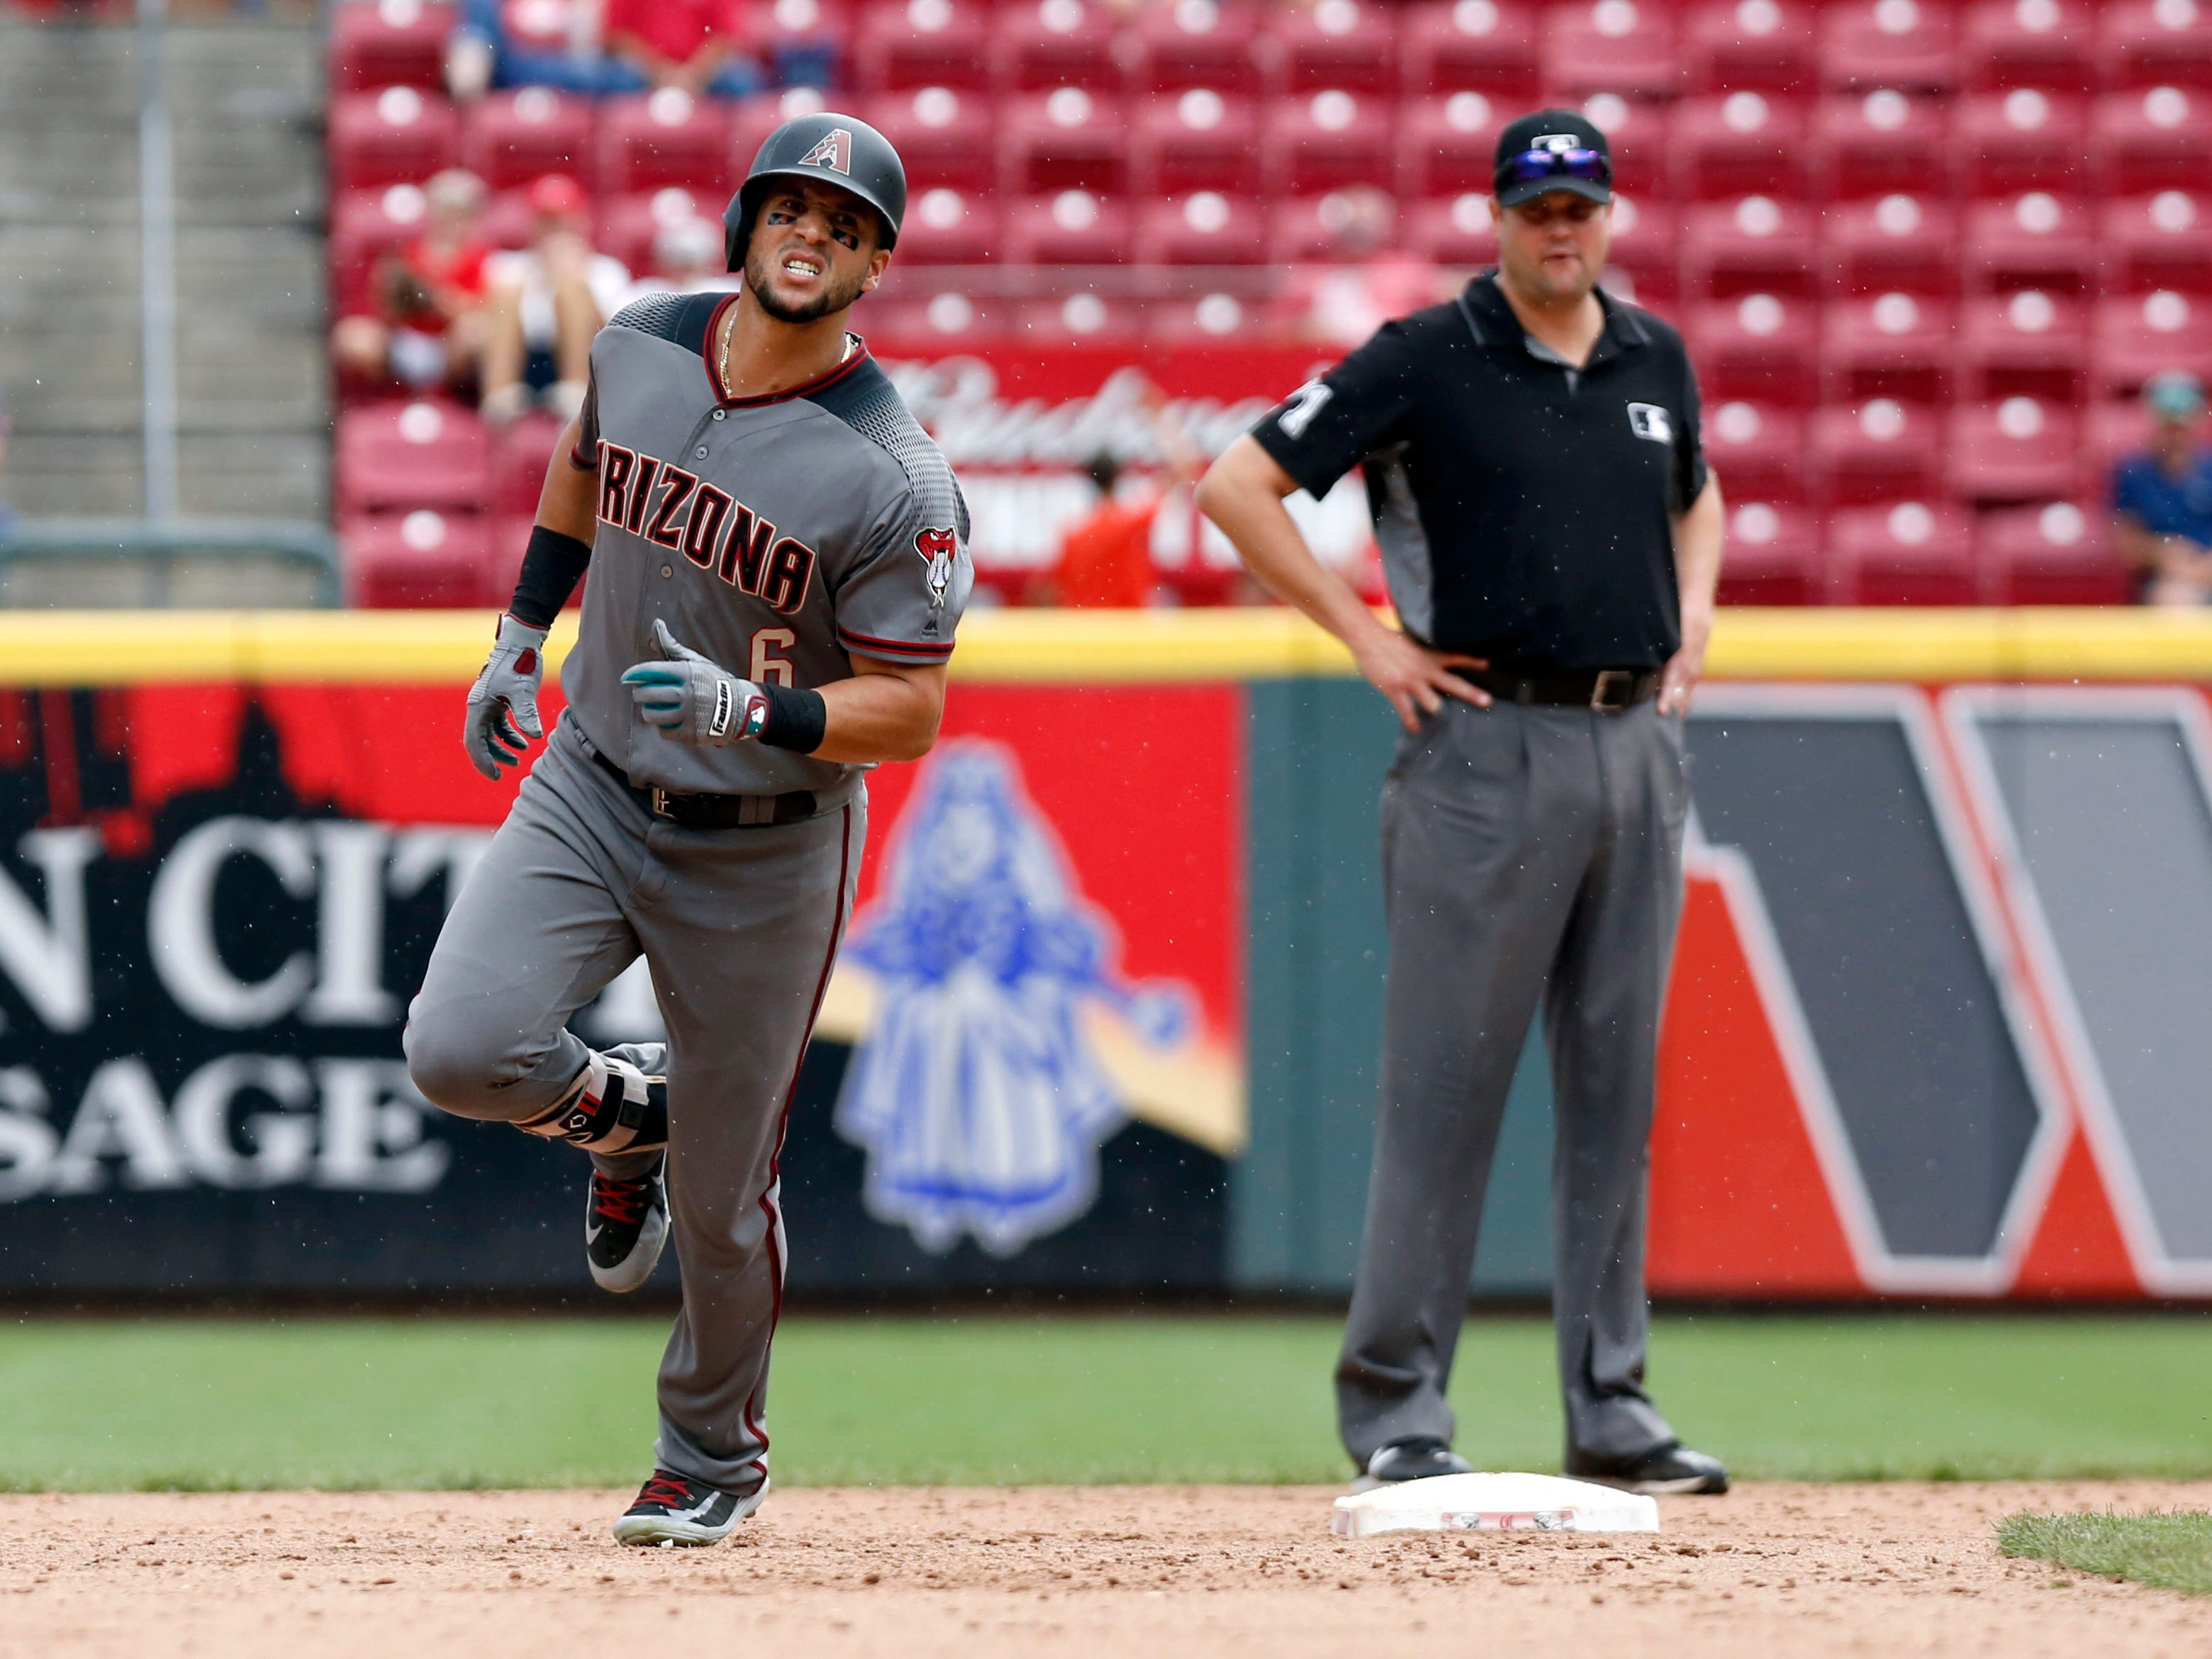 Aug 12, 2018; Cincinnati, OH, USA; Arizona Diamondbacks left fielder David Peralta (6) rounds the bases after hitting a solo home run against the Cincinnati Reds during the ninth inning at Great American Ball Park. Mandatory Credit: David Kohl-USA TODAY Sports